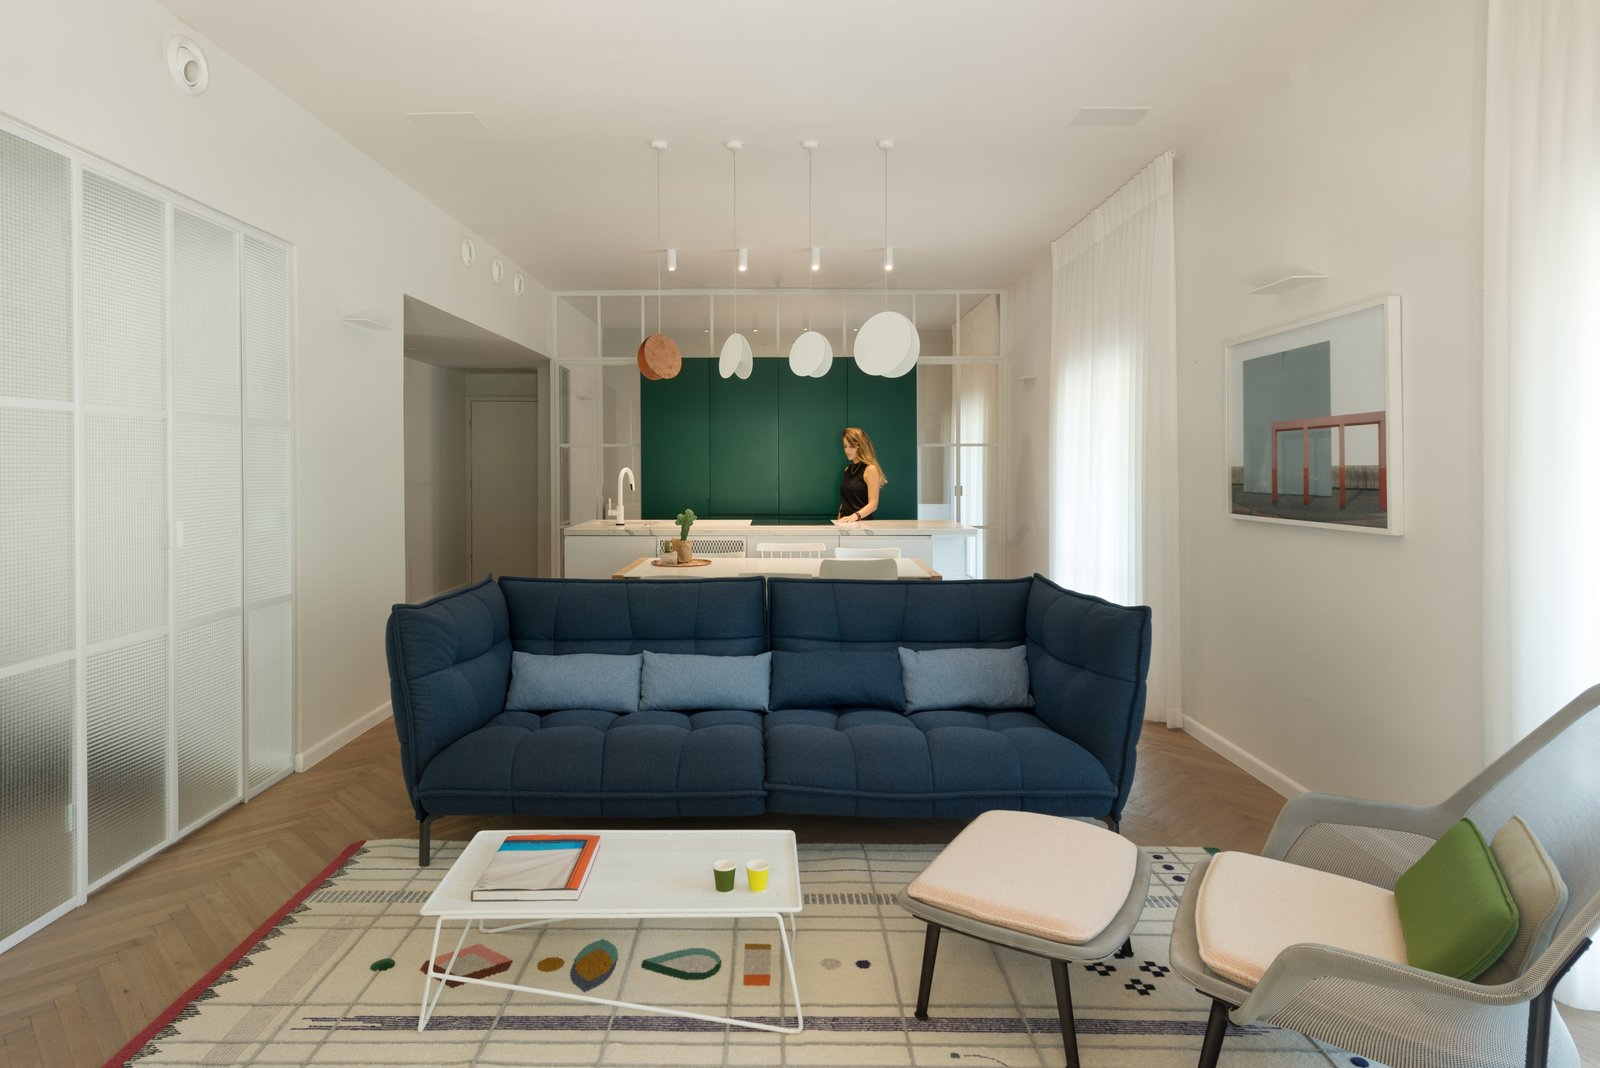 Living Room, Sofa, Chair, Coffee Tables, Bookcase, Ceiling Lighting, Pendant Lighting, Wall Lighting, and Medium Hardwood Floor living room  Best Photos from Colorfull in the white city